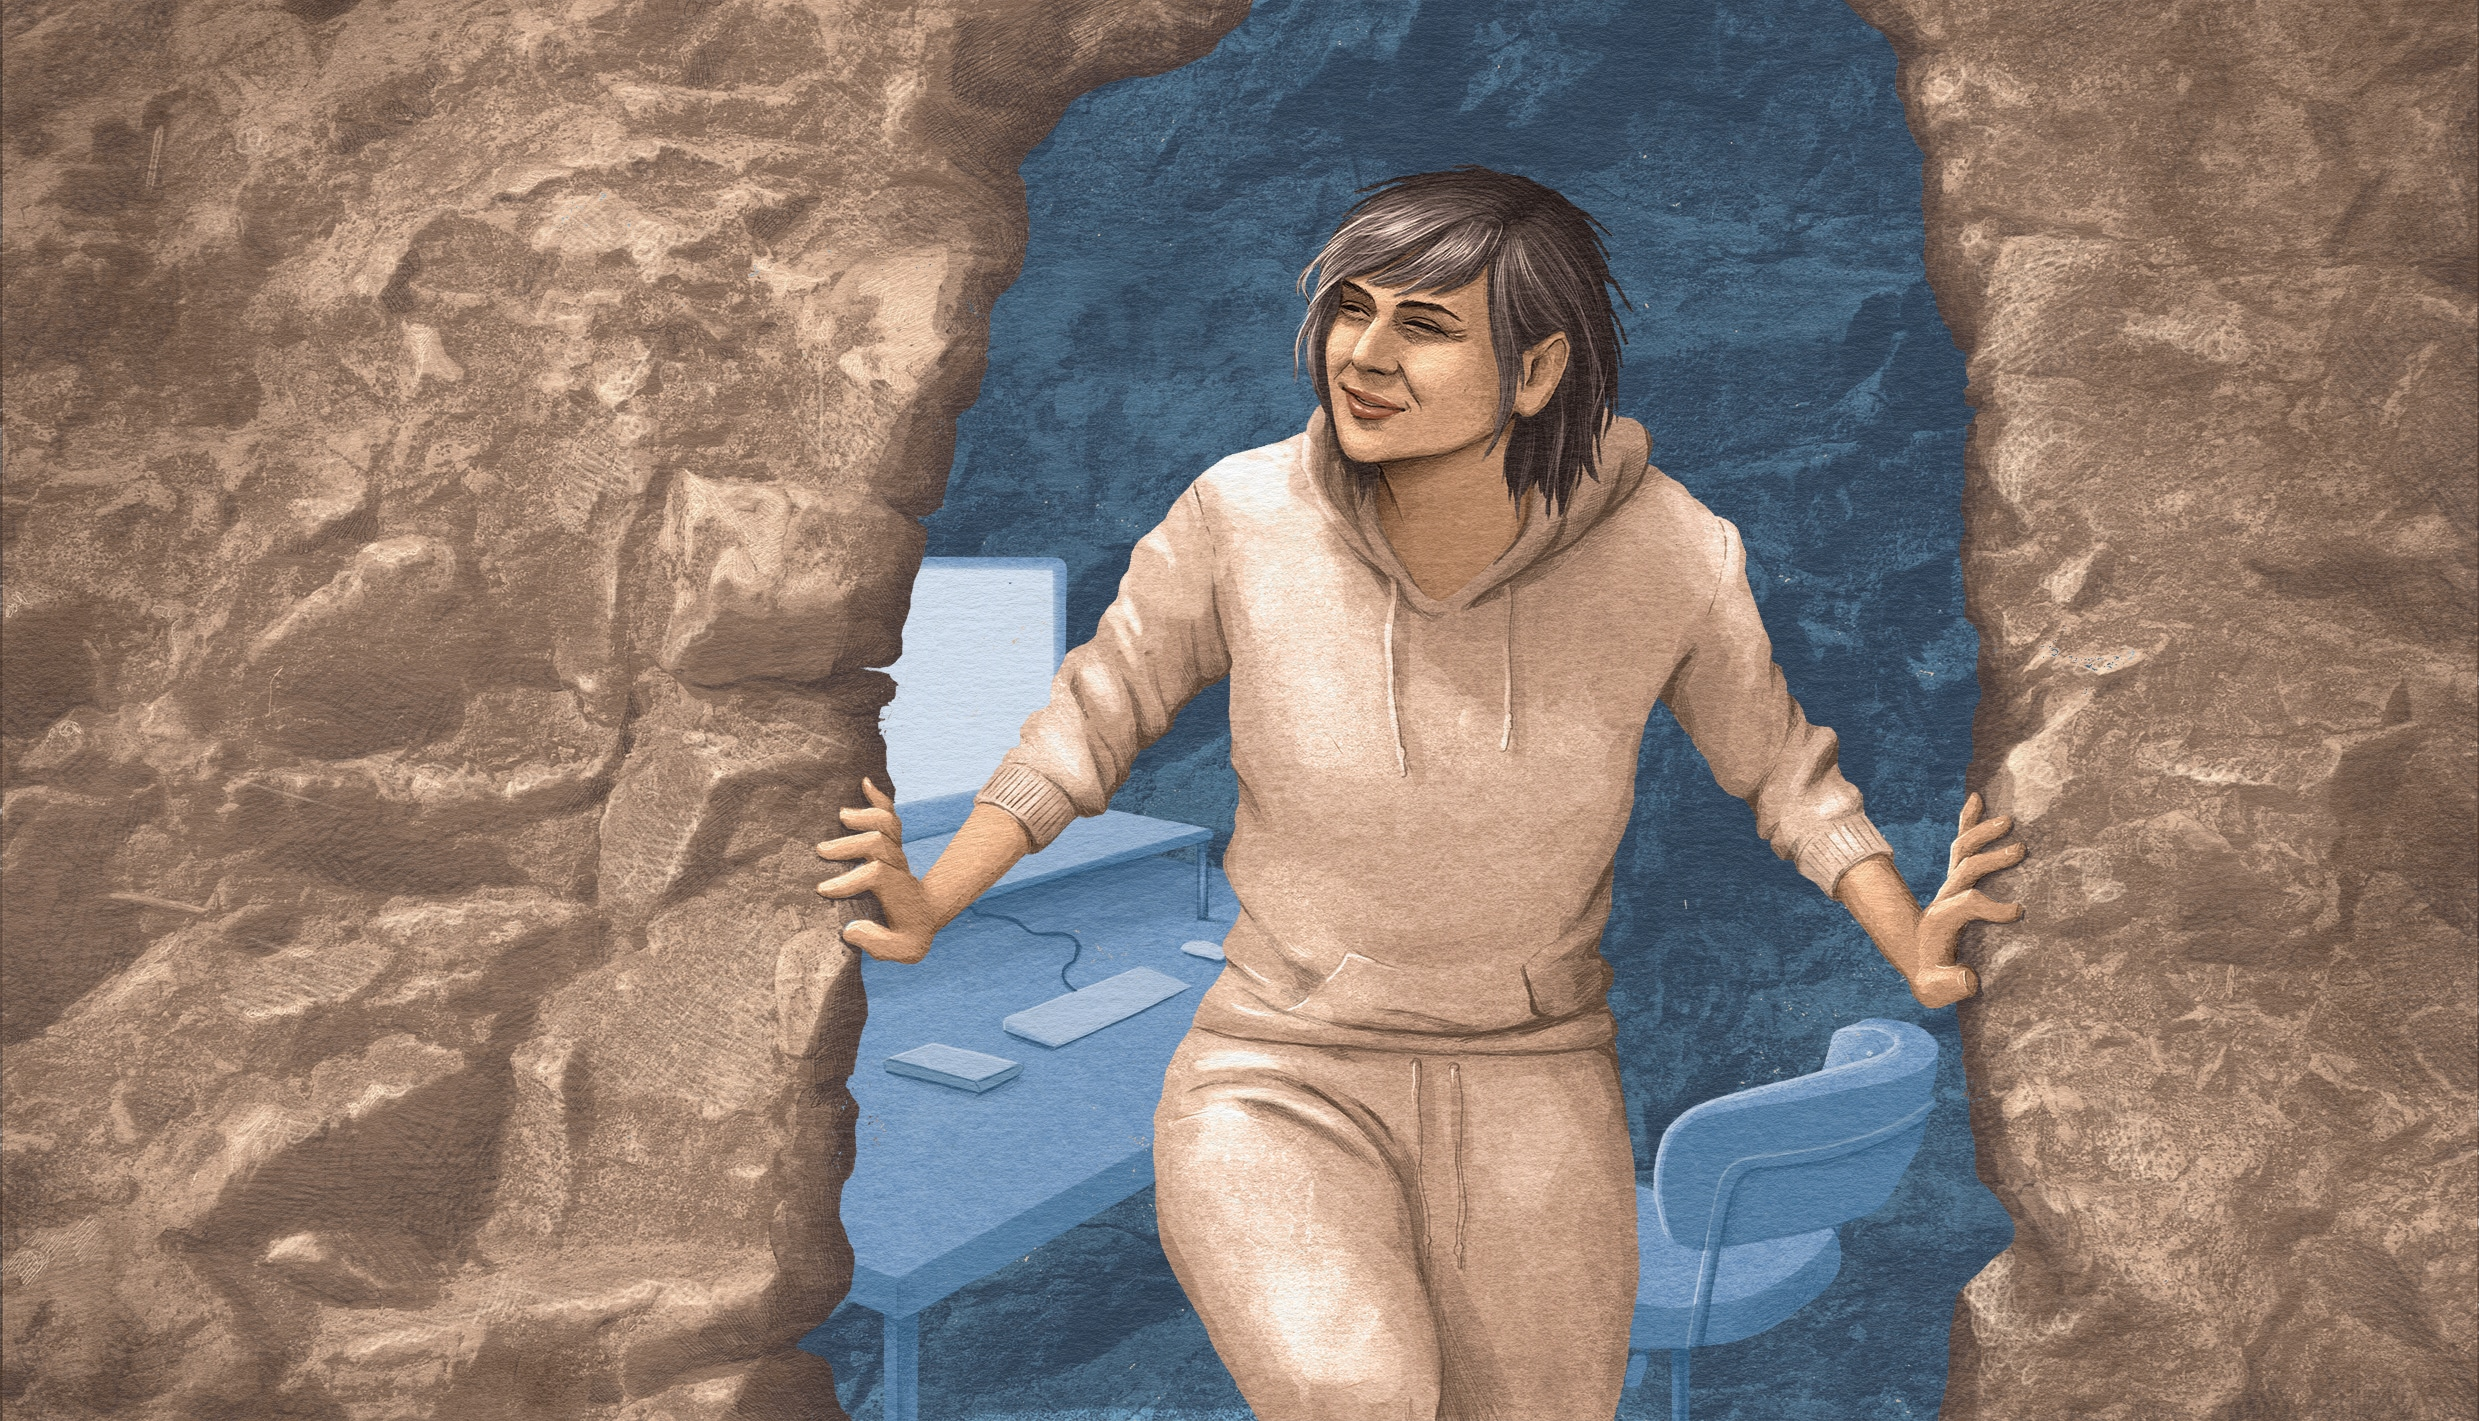 Illustration of a woman emerging from a cave, squinting into bright sunlight. She has rumpled hair and is wearing a sweatsuit, and a home office can be seen in the cave.